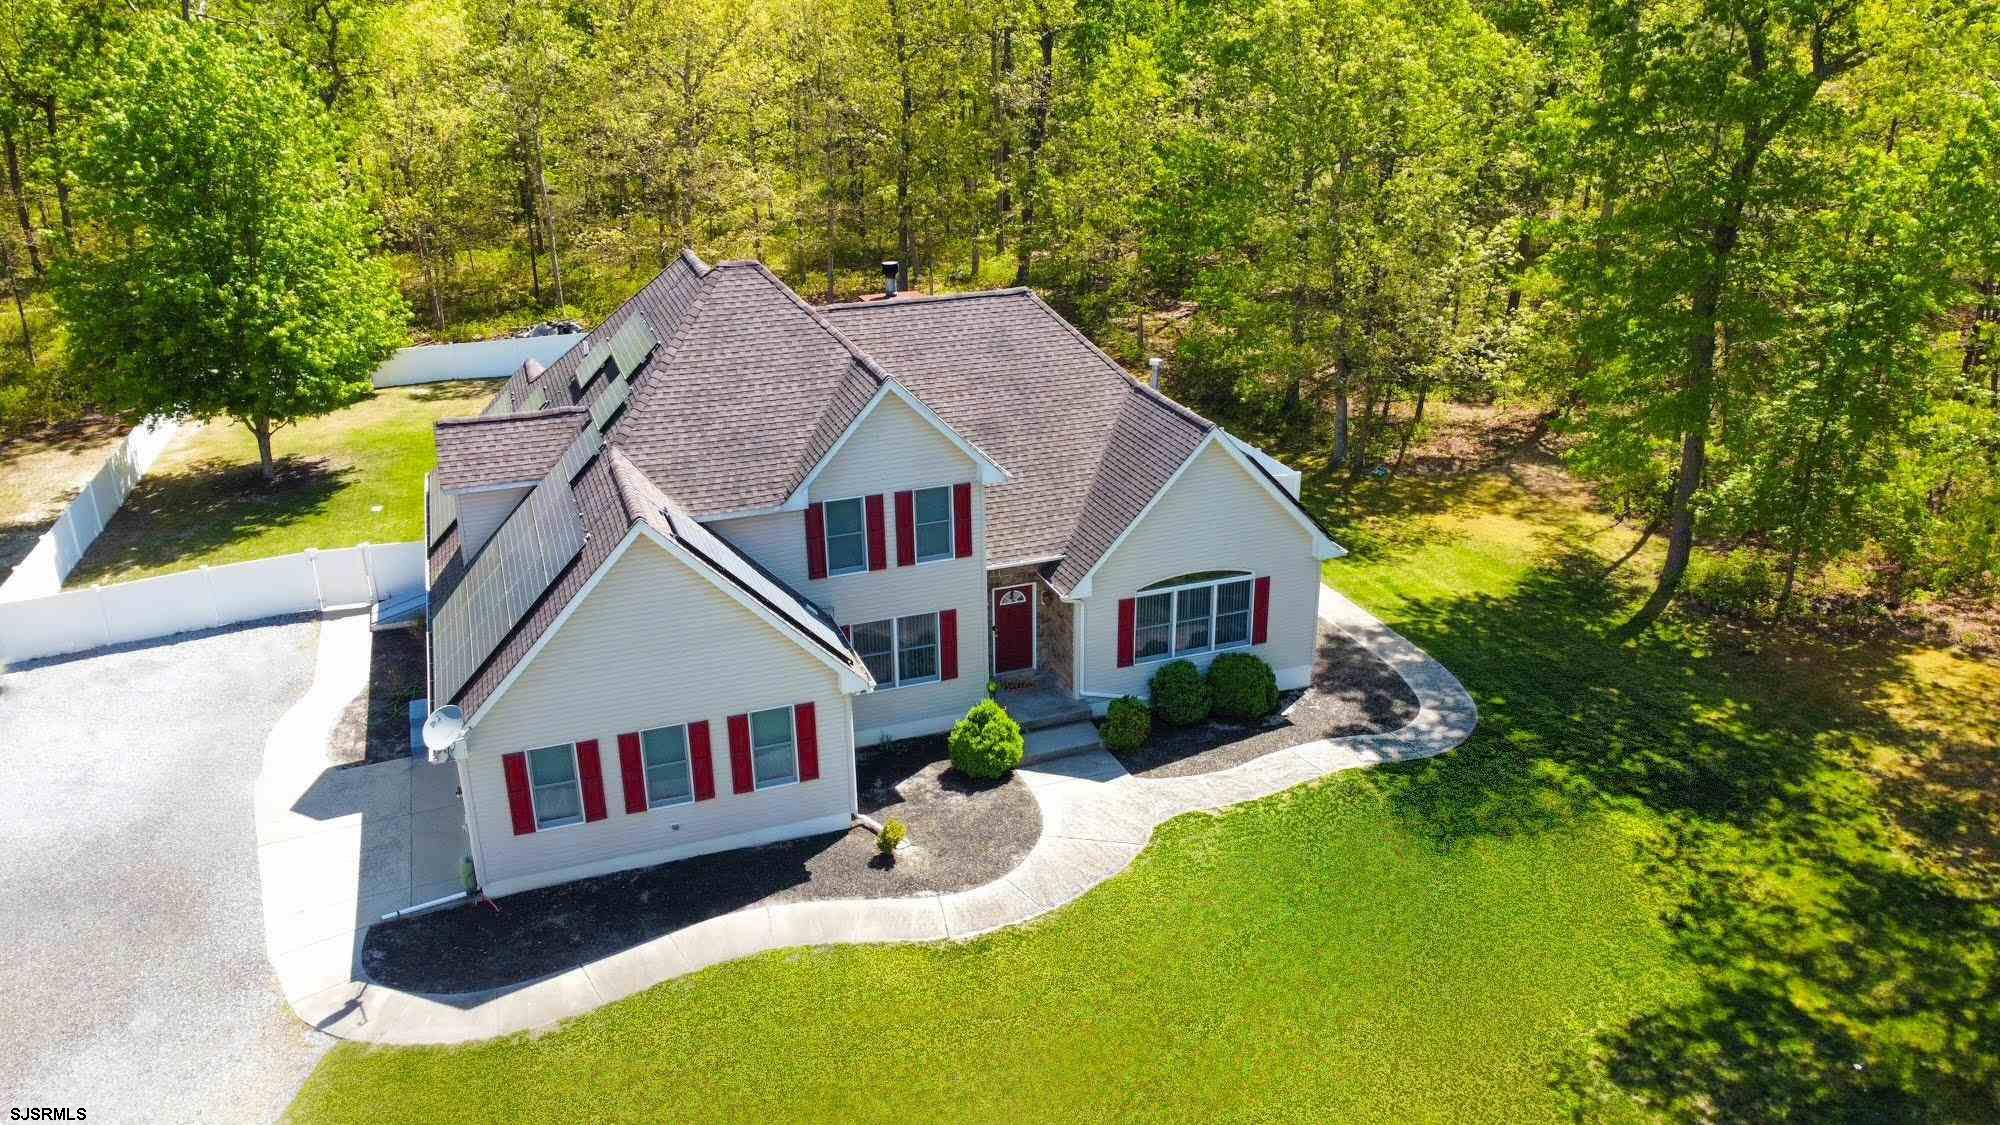 This beautifully maintained, 5 bedroom, 4.5 bathroom home, is located in the coveted area of Laureldale, Mays Landing. This home sits on a cul-de-sac with over 4 acres of land! Surrounded by beautiful landscapes, this serene location is only steps away from captivating nature trails, encompassed by the renowned NJ Pinelands. The fenced in yard makes it perfect for families with children and pets, and the in-ground pool makes it ideal for entertaining. This energy efficient home also comes fully equipped with solar panels, attached two car garage, full unfinished basement, and complete irrigation system! Although this home is secluded in what feels like its own personal retreat, it is only minutes from all major highways, Hamilton Mall, shop